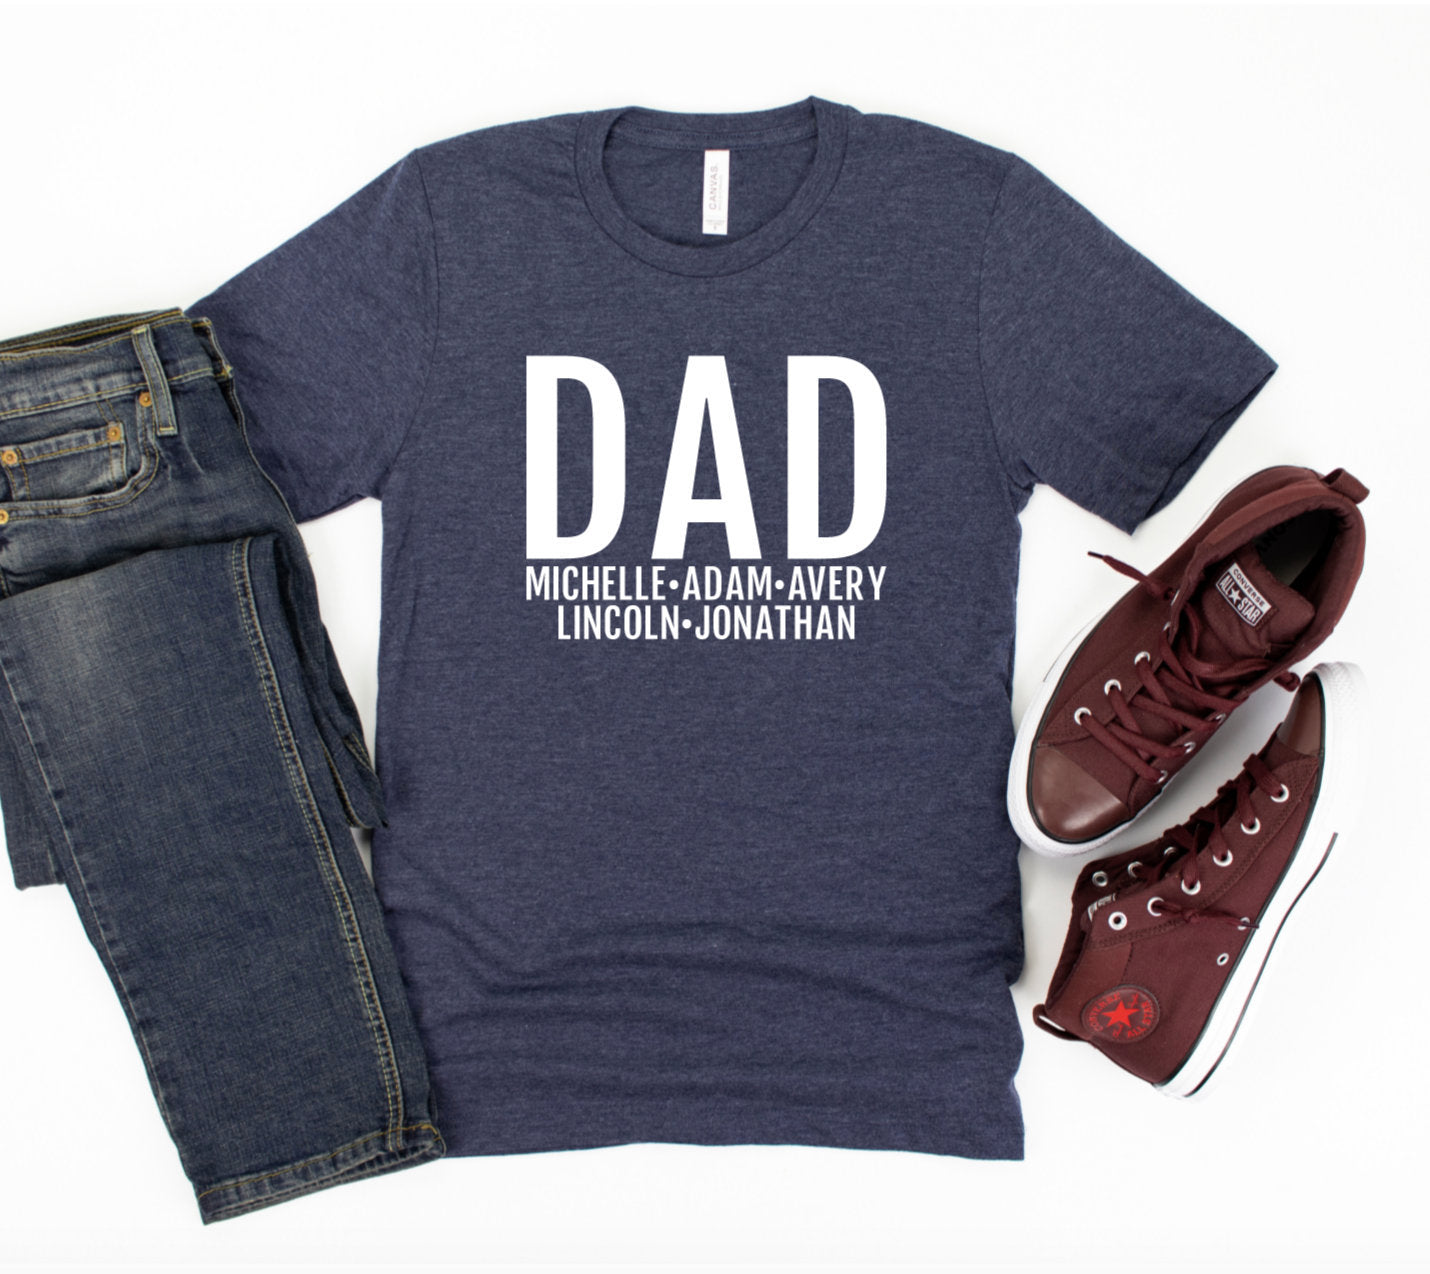 Personalized Dad T-shirt With Kids Names - Dad Shirt - Gift For Dad - Father's Day Gift Idea - Dad T-shirt